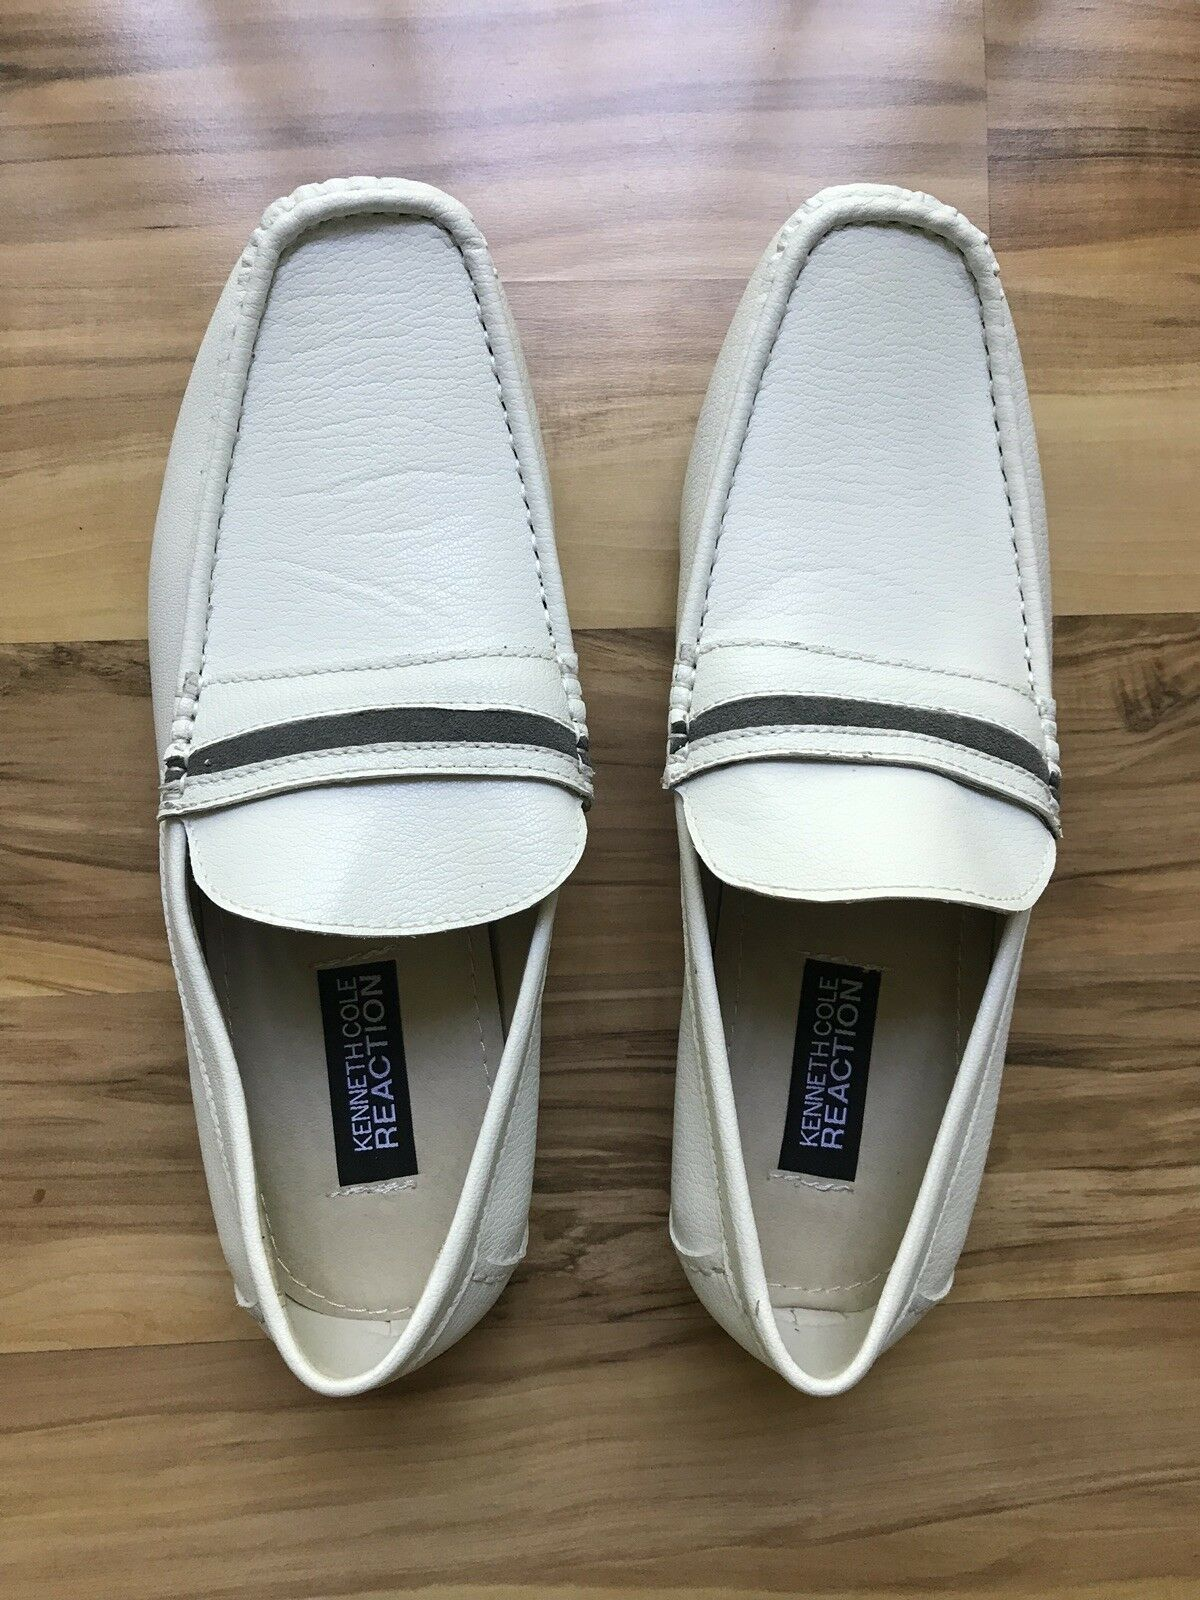 NWOB Kenneth Cole Mens White Casual Moccasins Driving shoes Slip On 8M